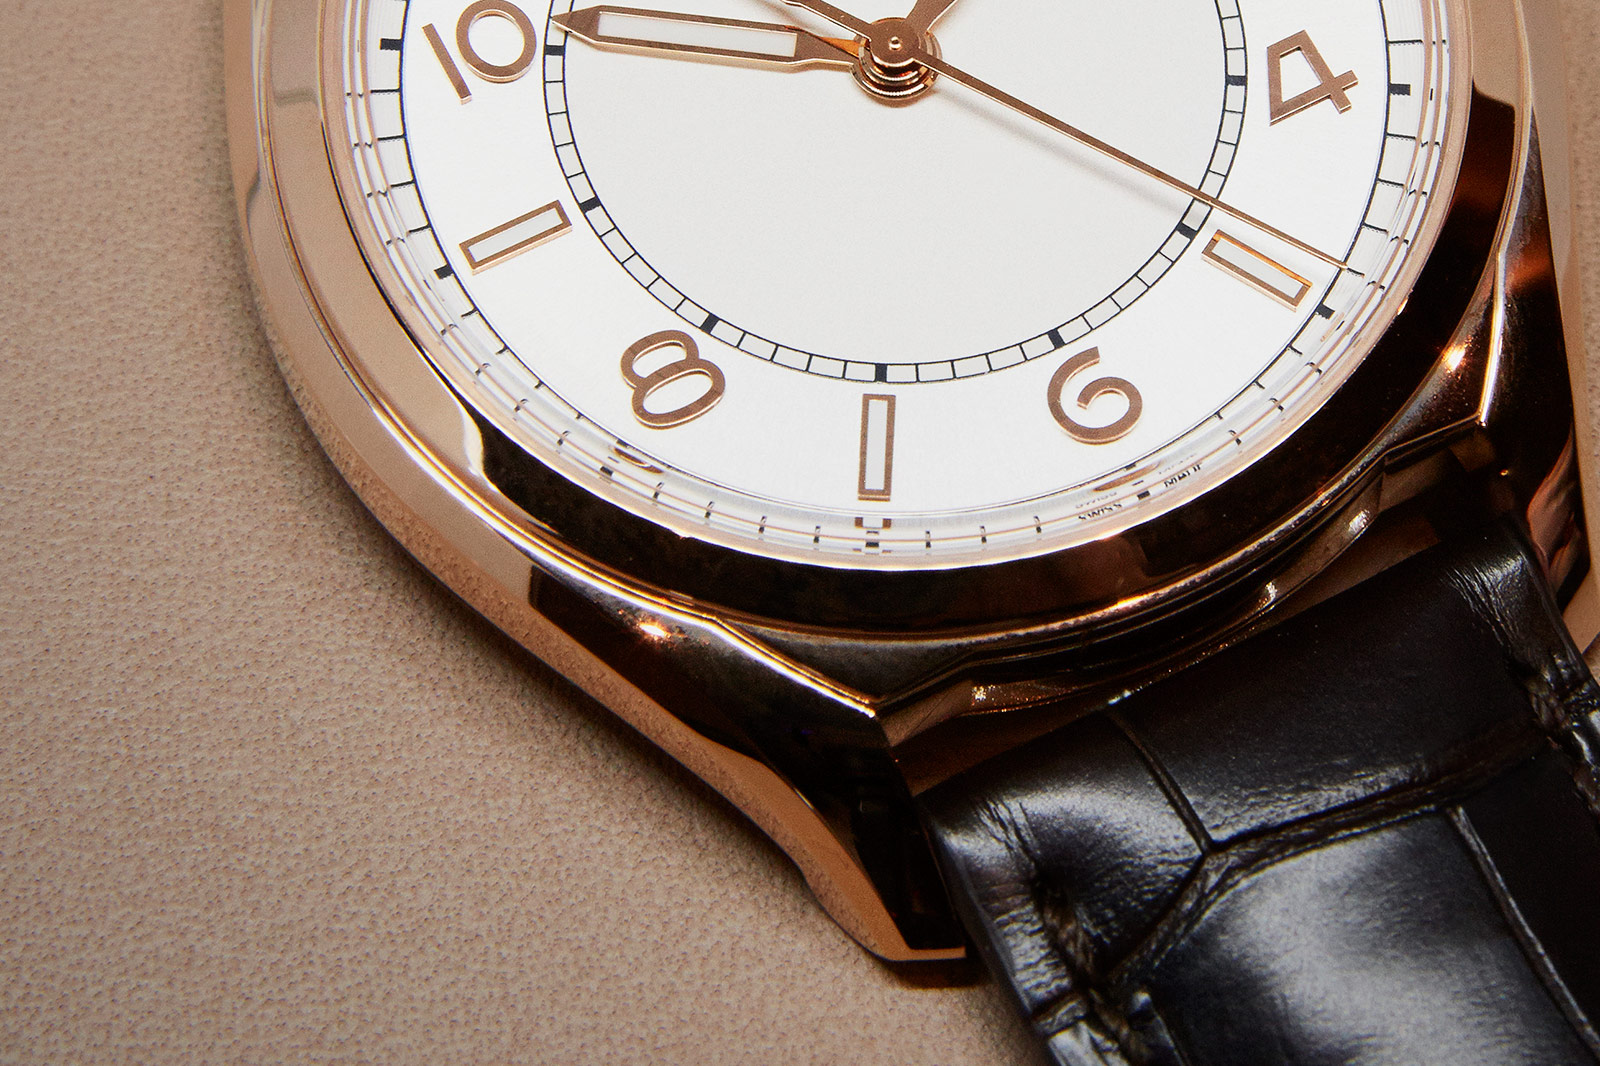 Vacheron Constantin Fiftysix Self-Winding gold dial